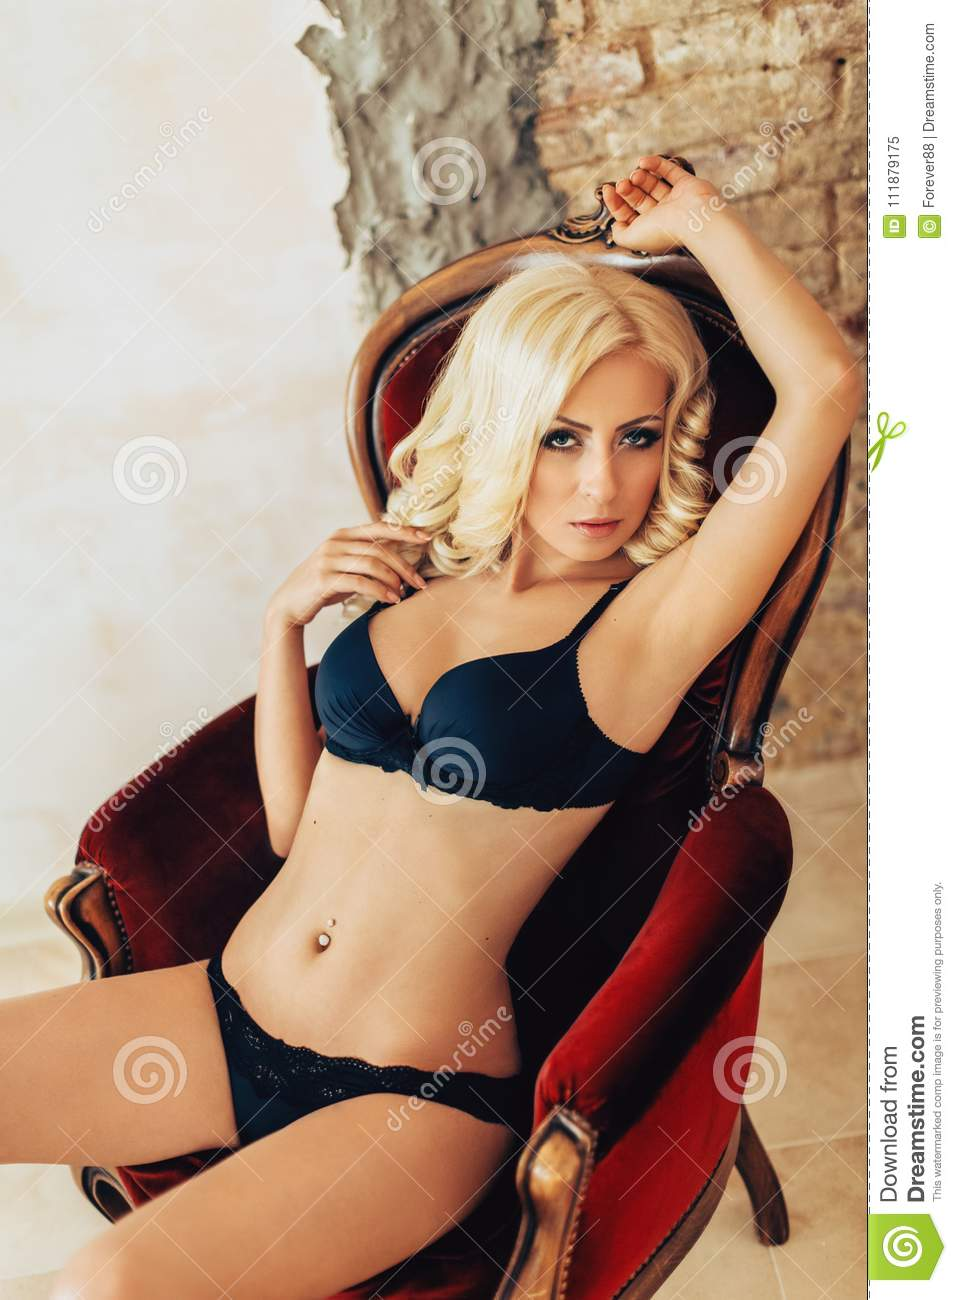 d9573b7c3 Portrait Of Beautiful Young Woman With Makeup Stock Image - Image of ...